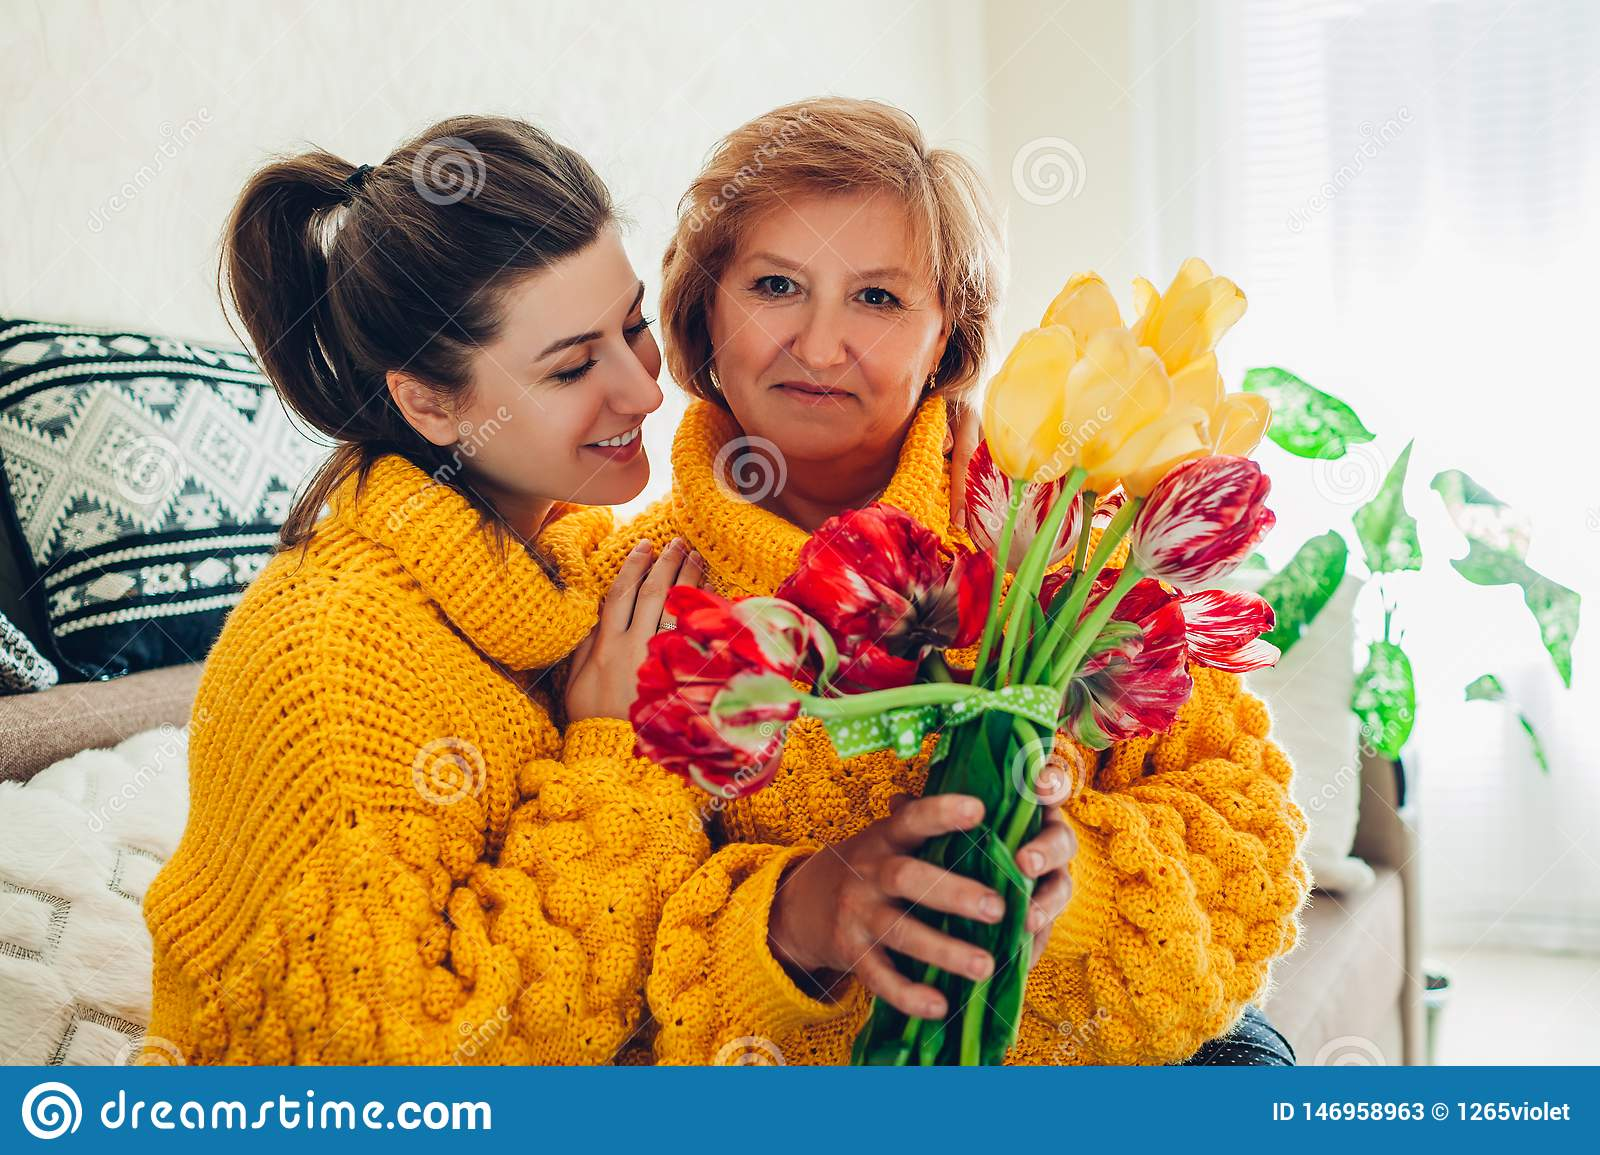 Daughter giving her mother bouquet of flowers at home as Mother`s day present wearing similar sweaters